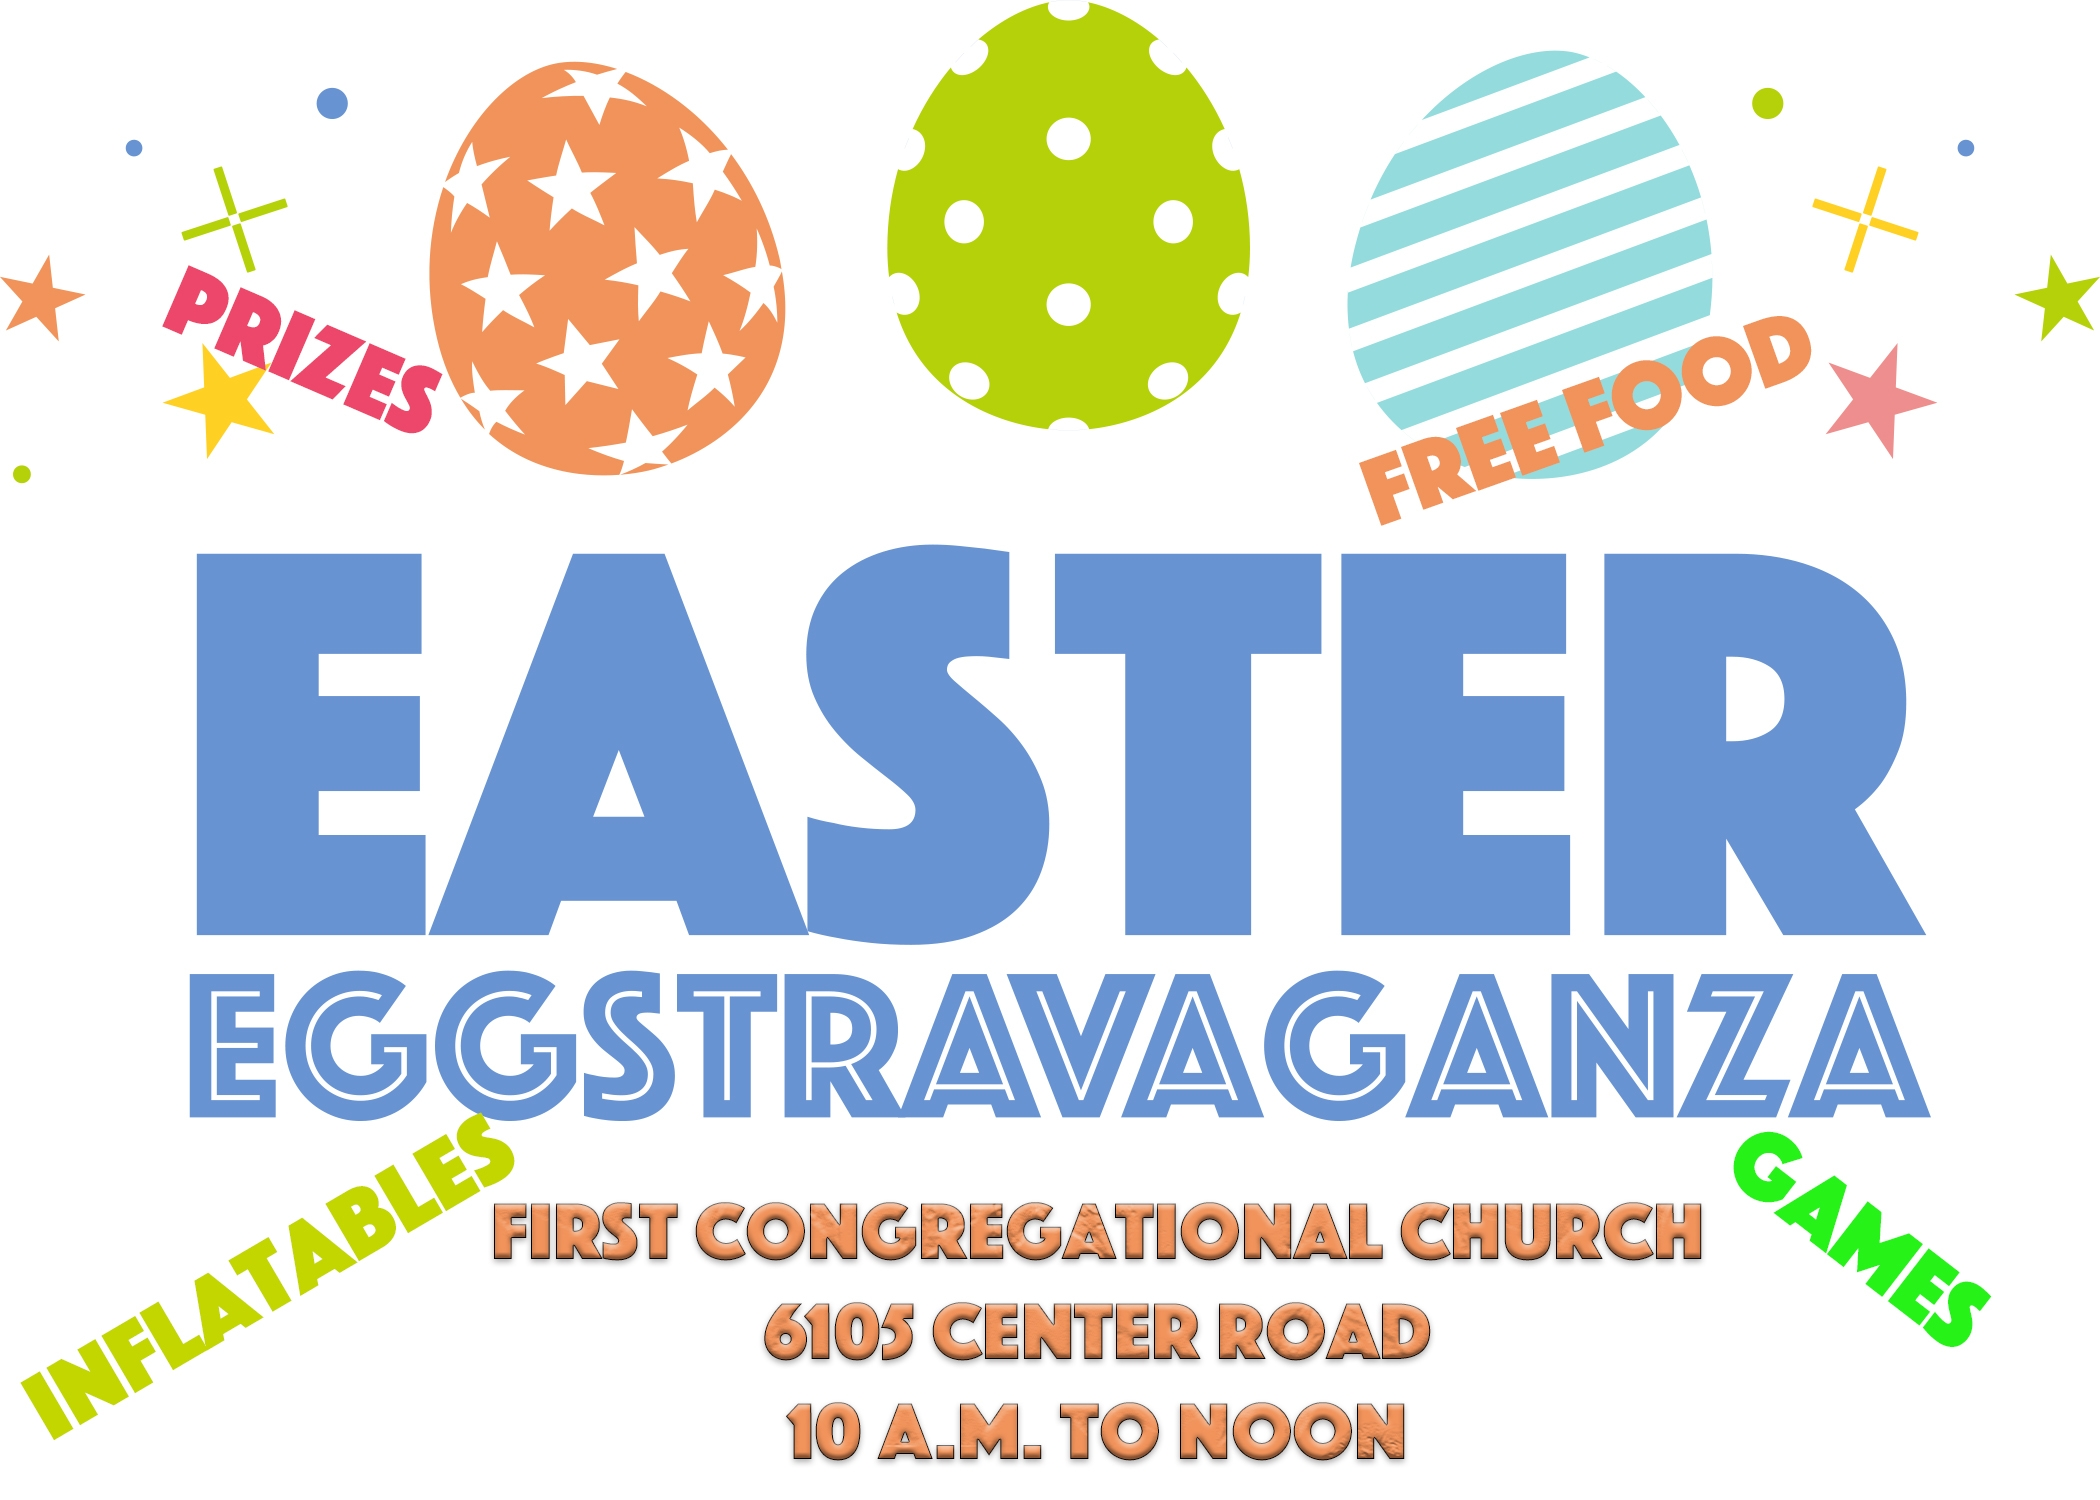 FCC Eggstravaganza Egg Hunt